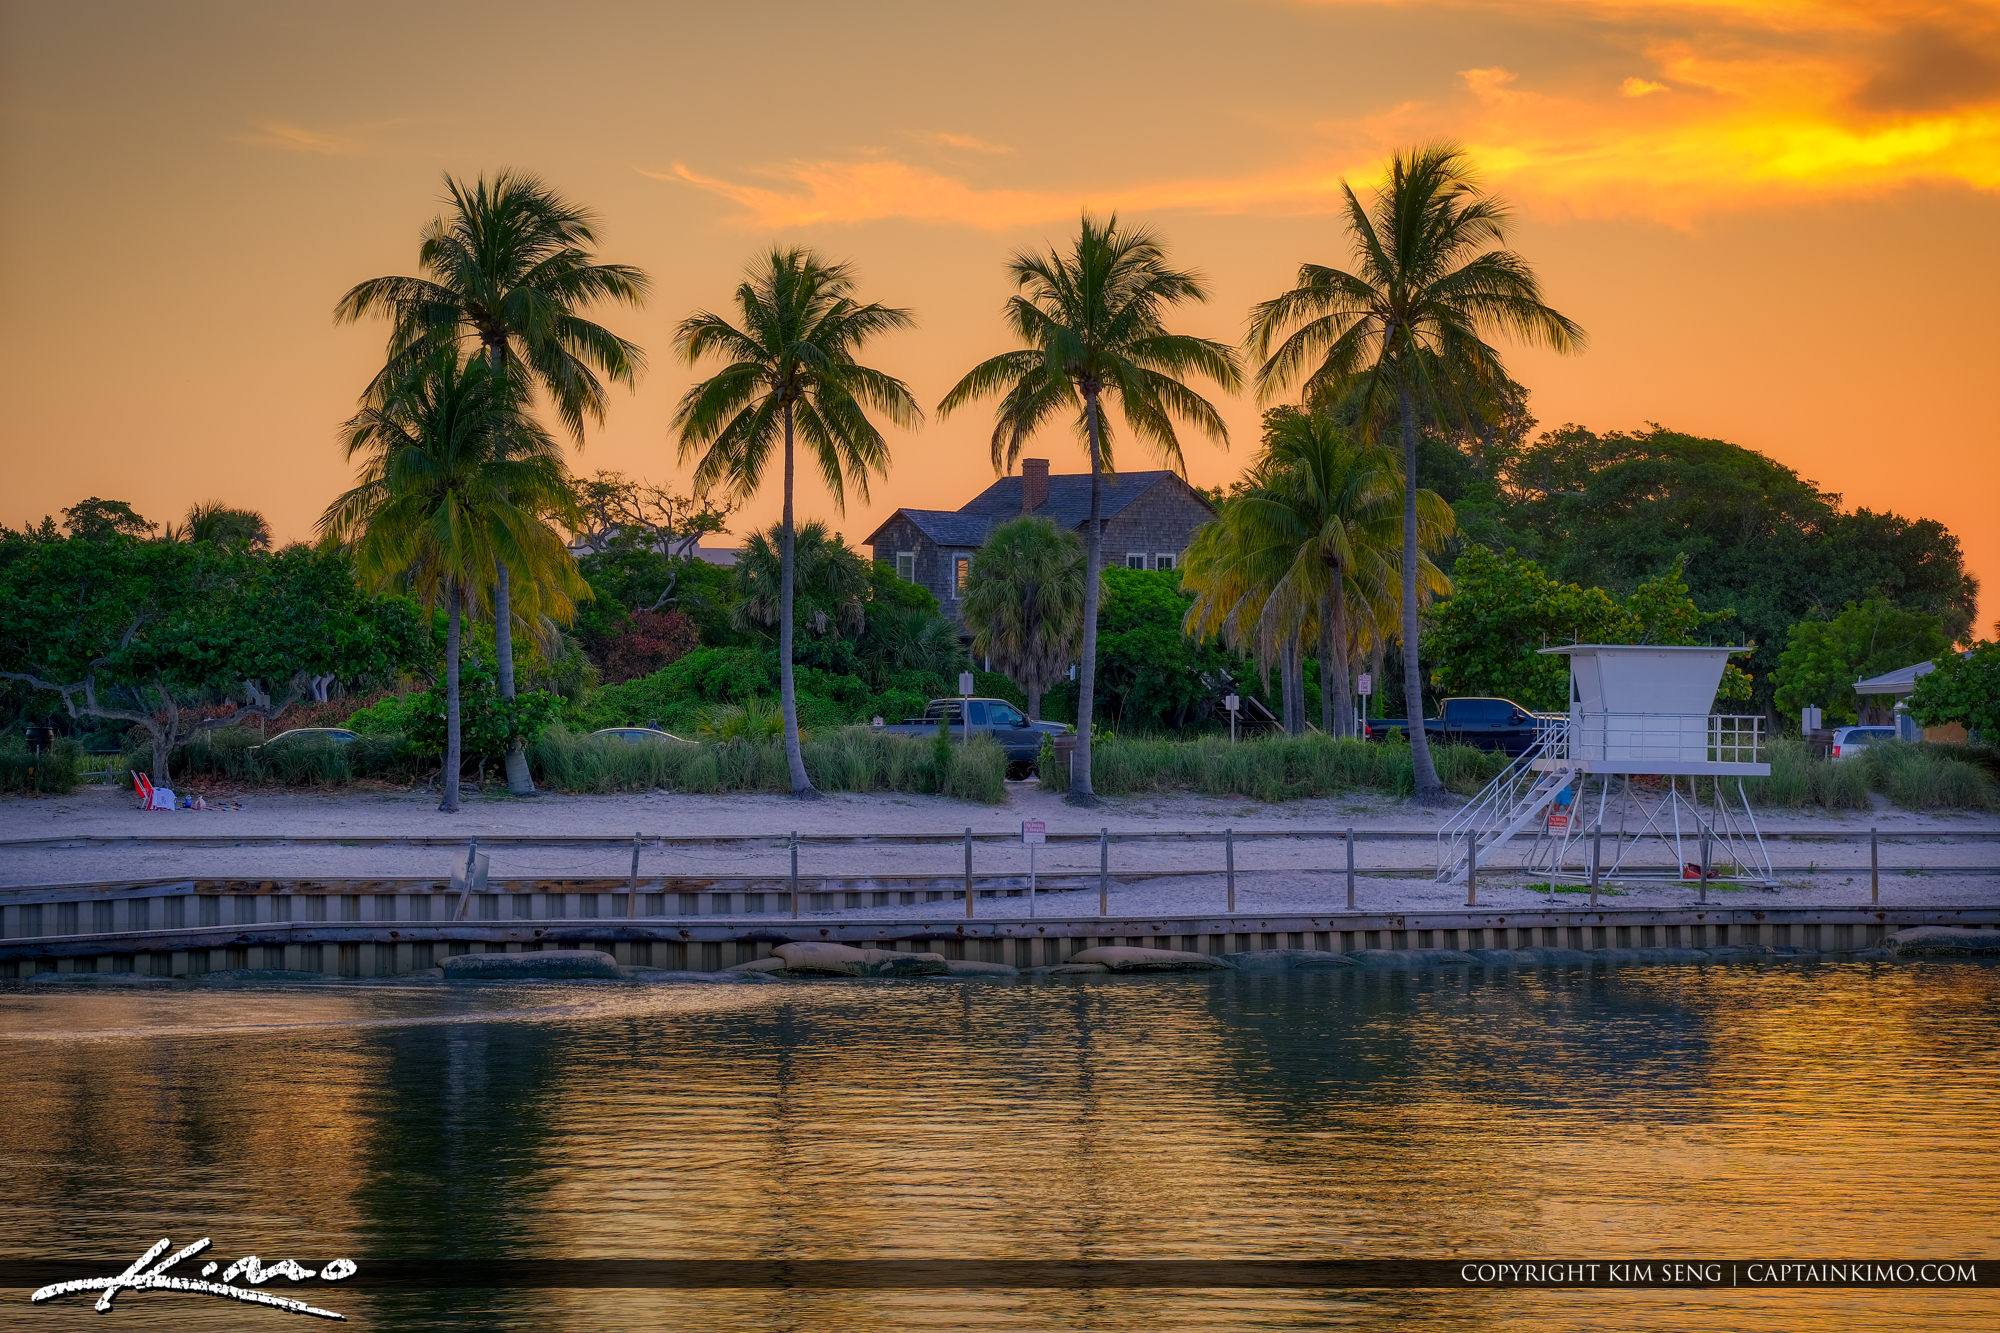 Sunset Dubois Park with Coconut Trees at Lagoon